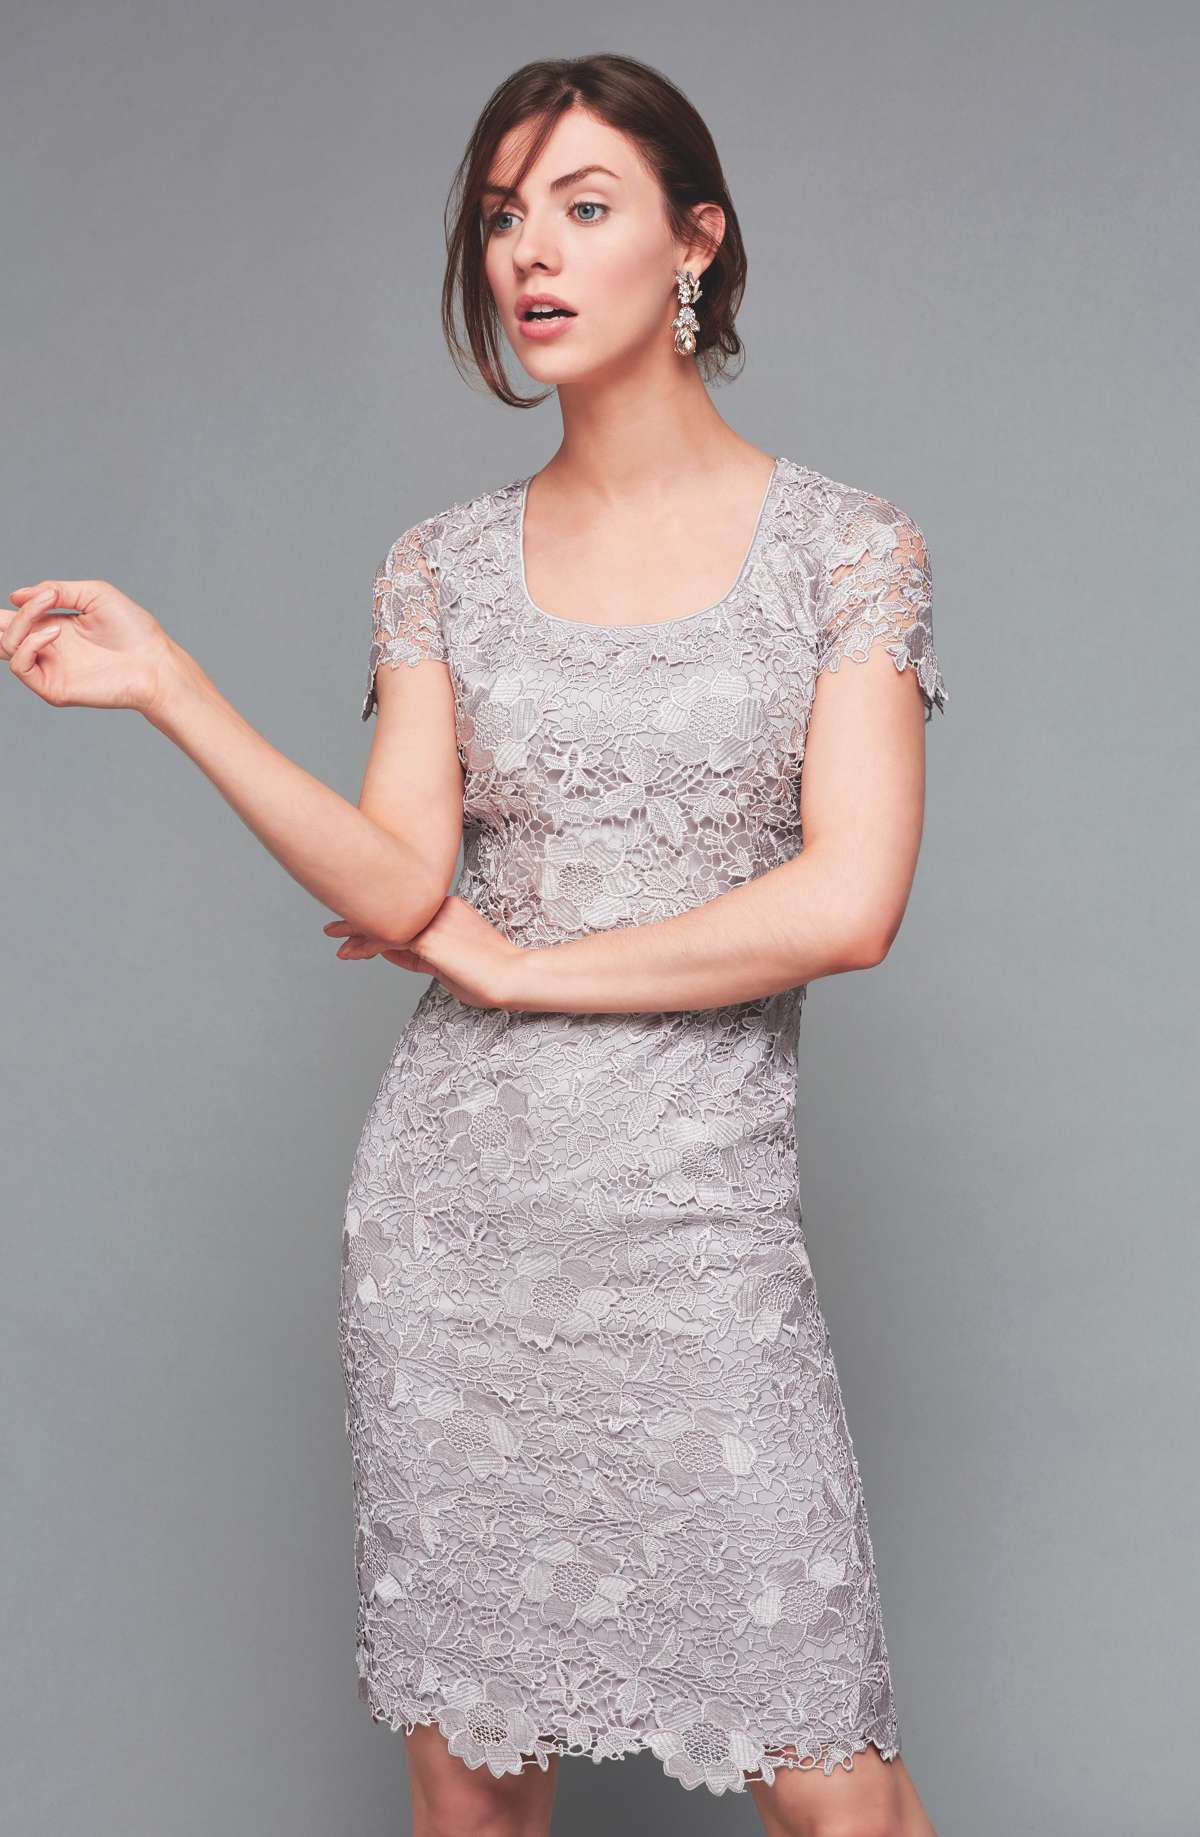 1b96b6c453b Gorgeous wedding guest outfits from Jacques Vert - Love Our Wedding